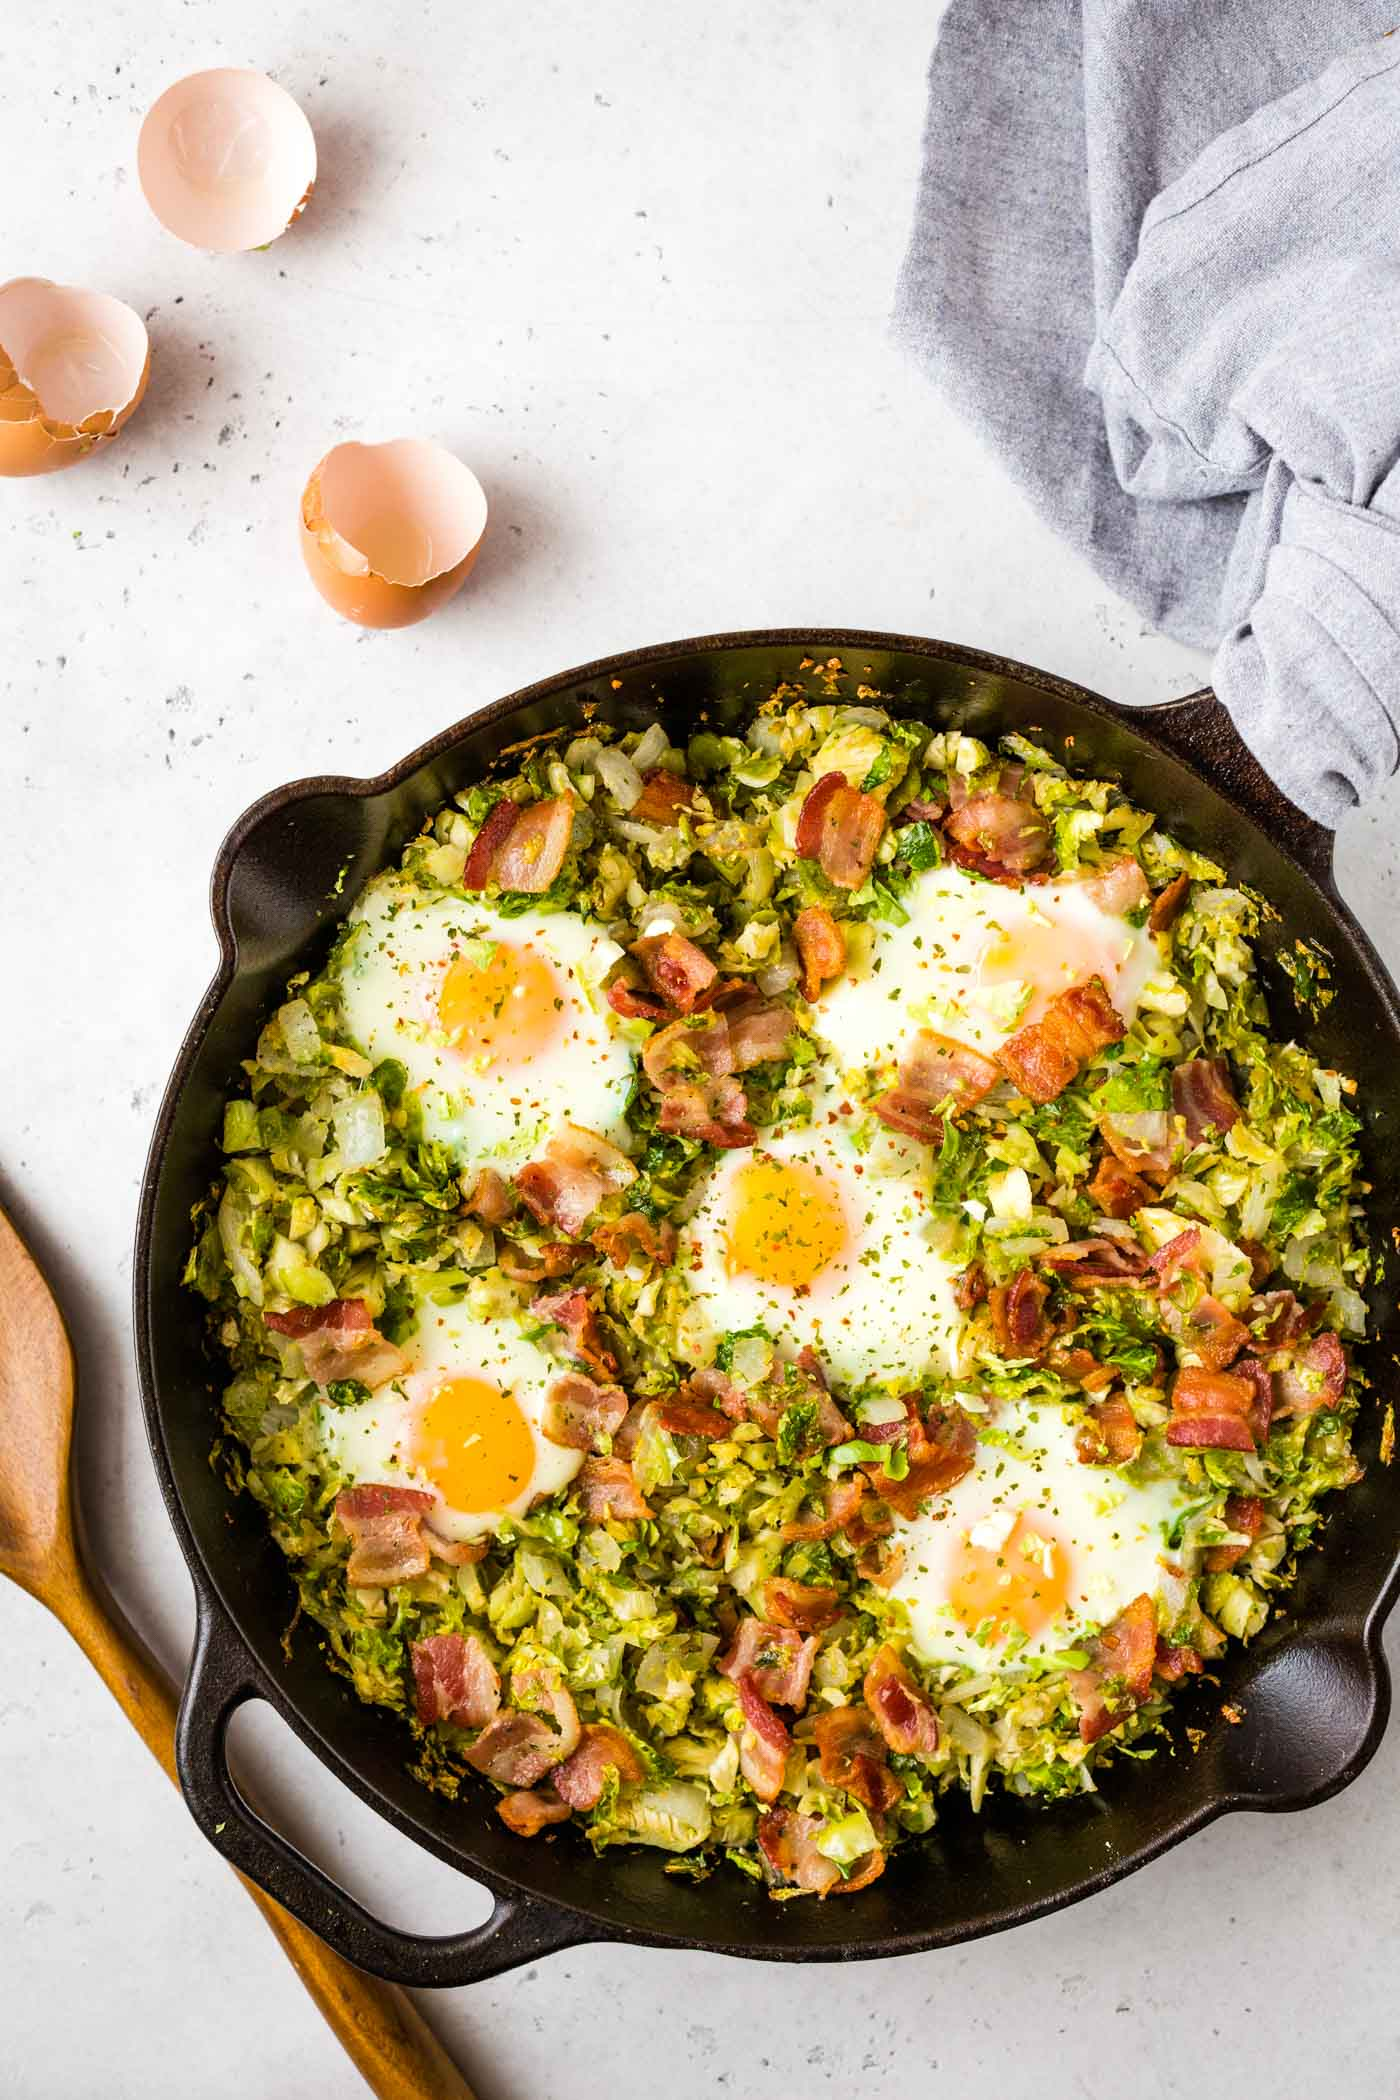 Brussels sprouts, bacon, and baked eggs in cast iron skillet